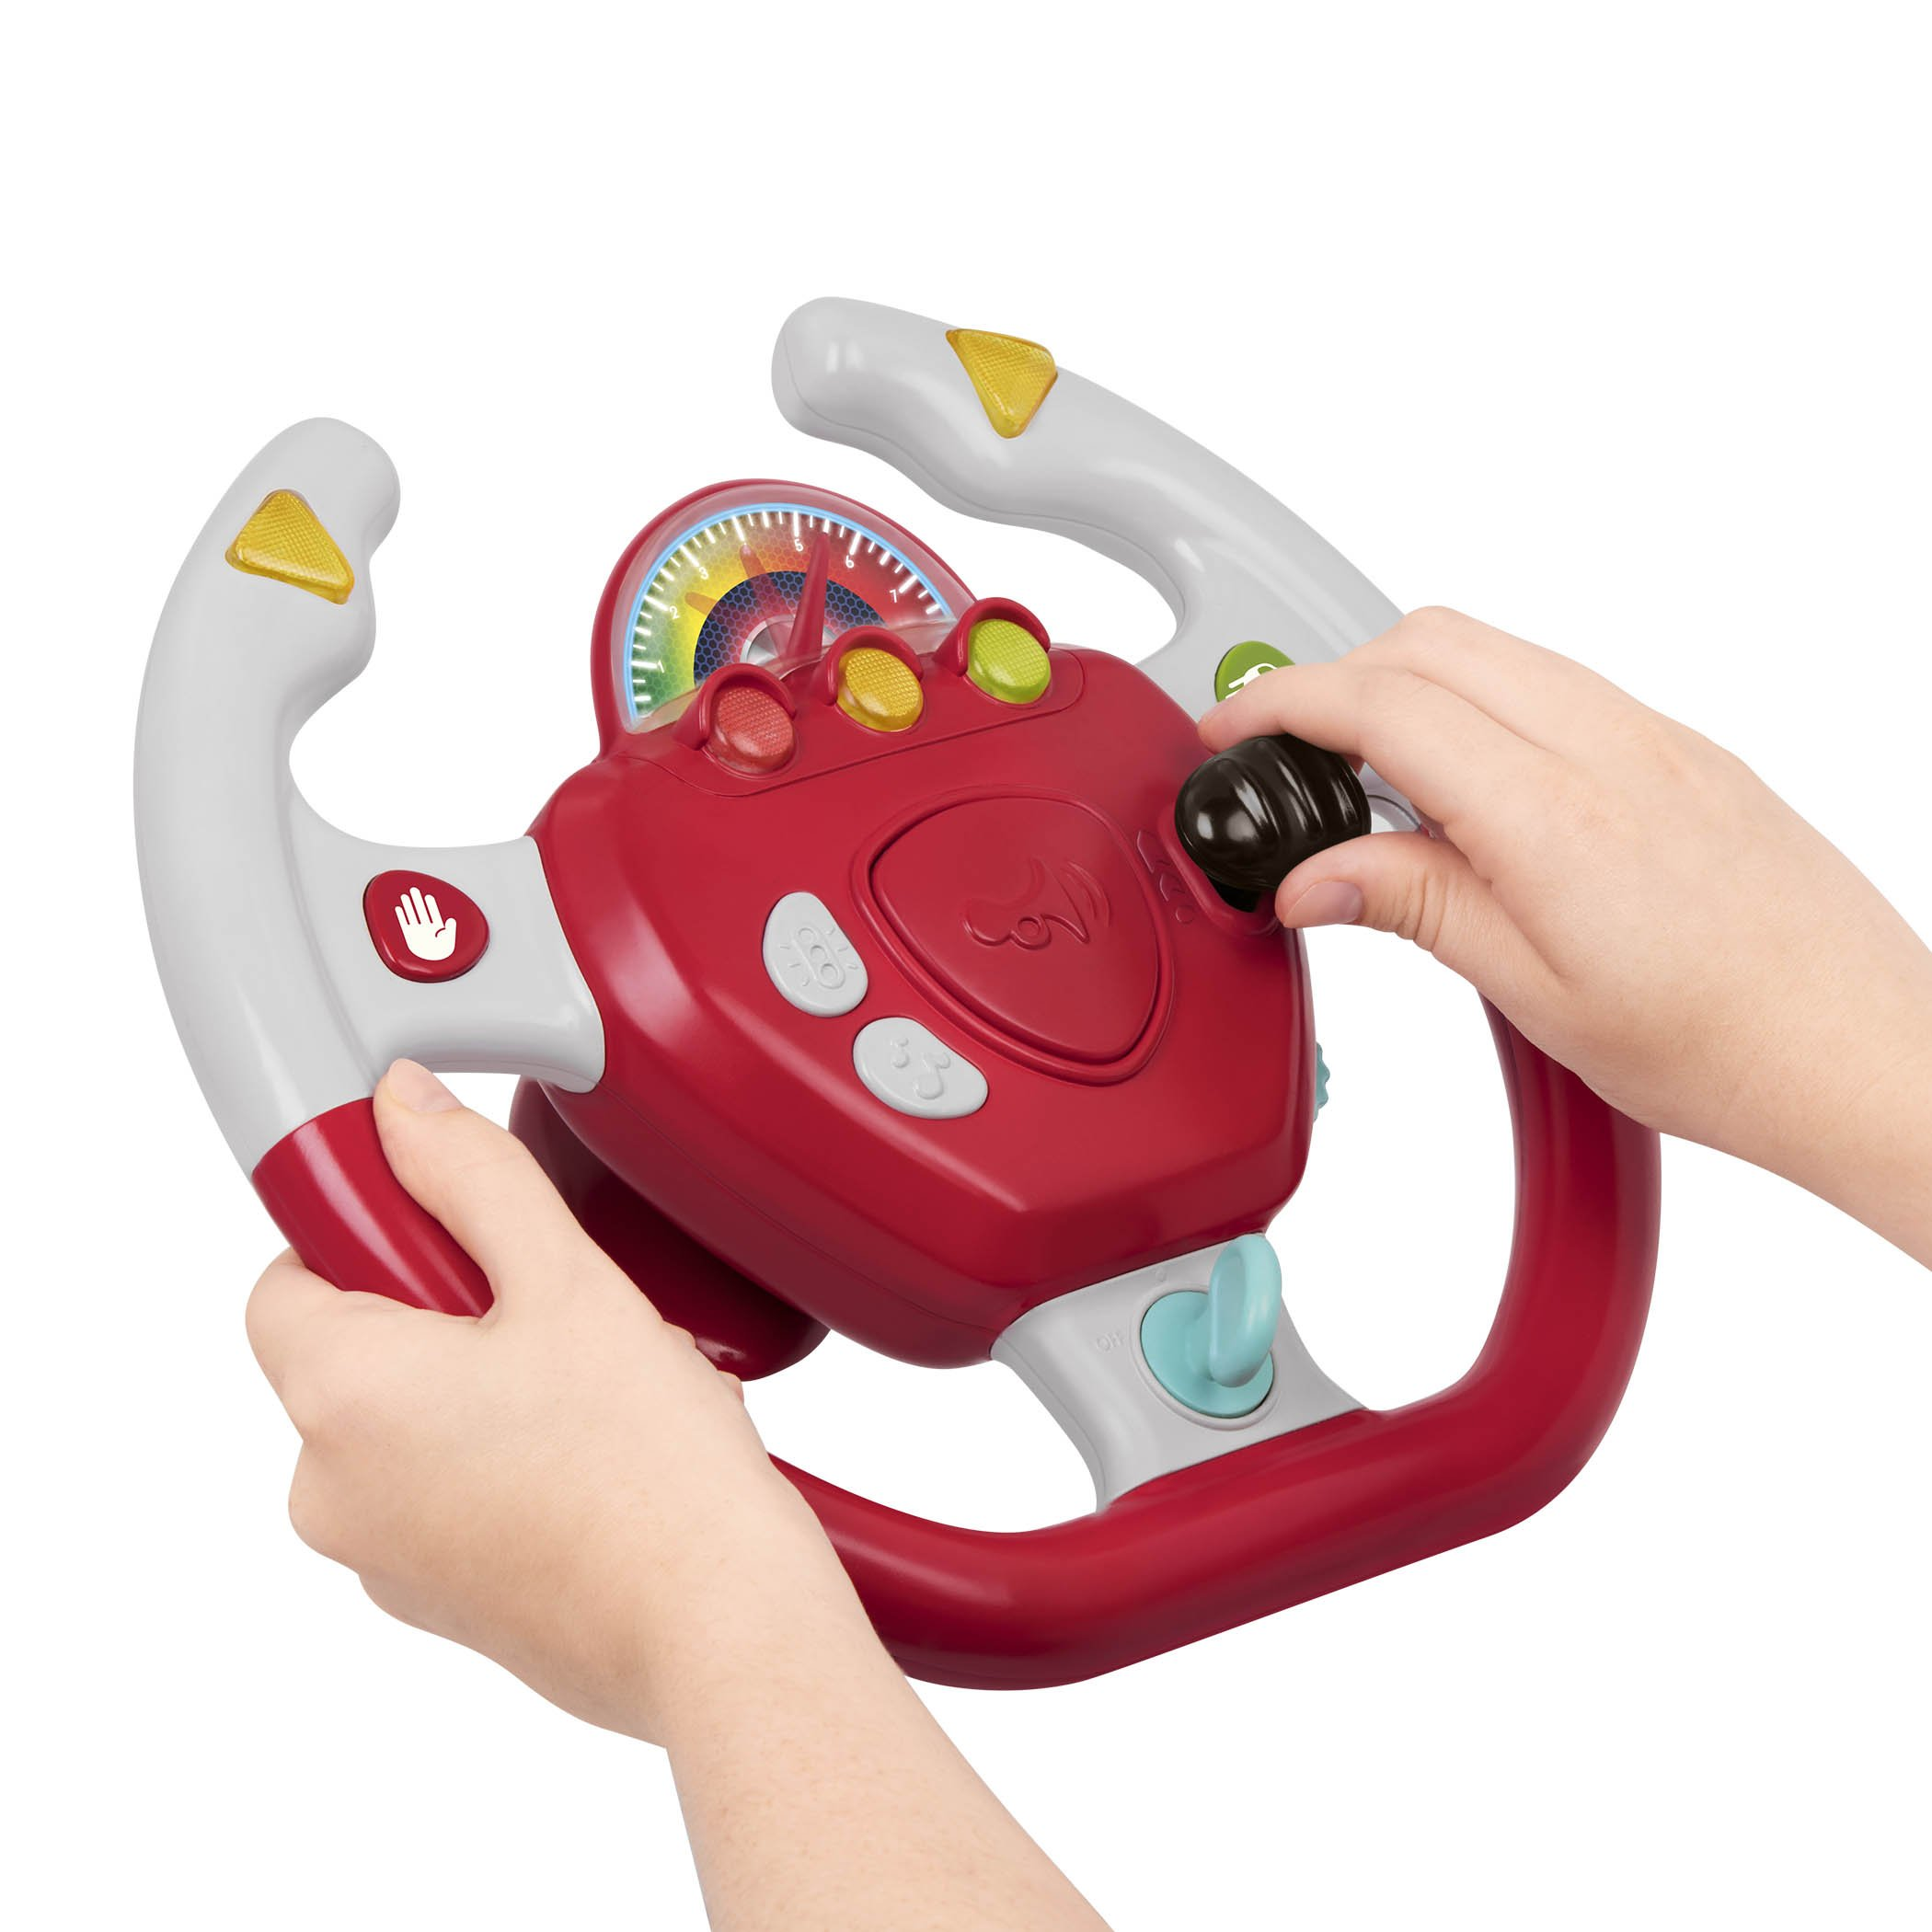 Battat - Geared to Steer Interactive Driving Wheel - Portable Pretend Play Toy Steering Wheel for Kids 2 years + by Battat (Image #4)